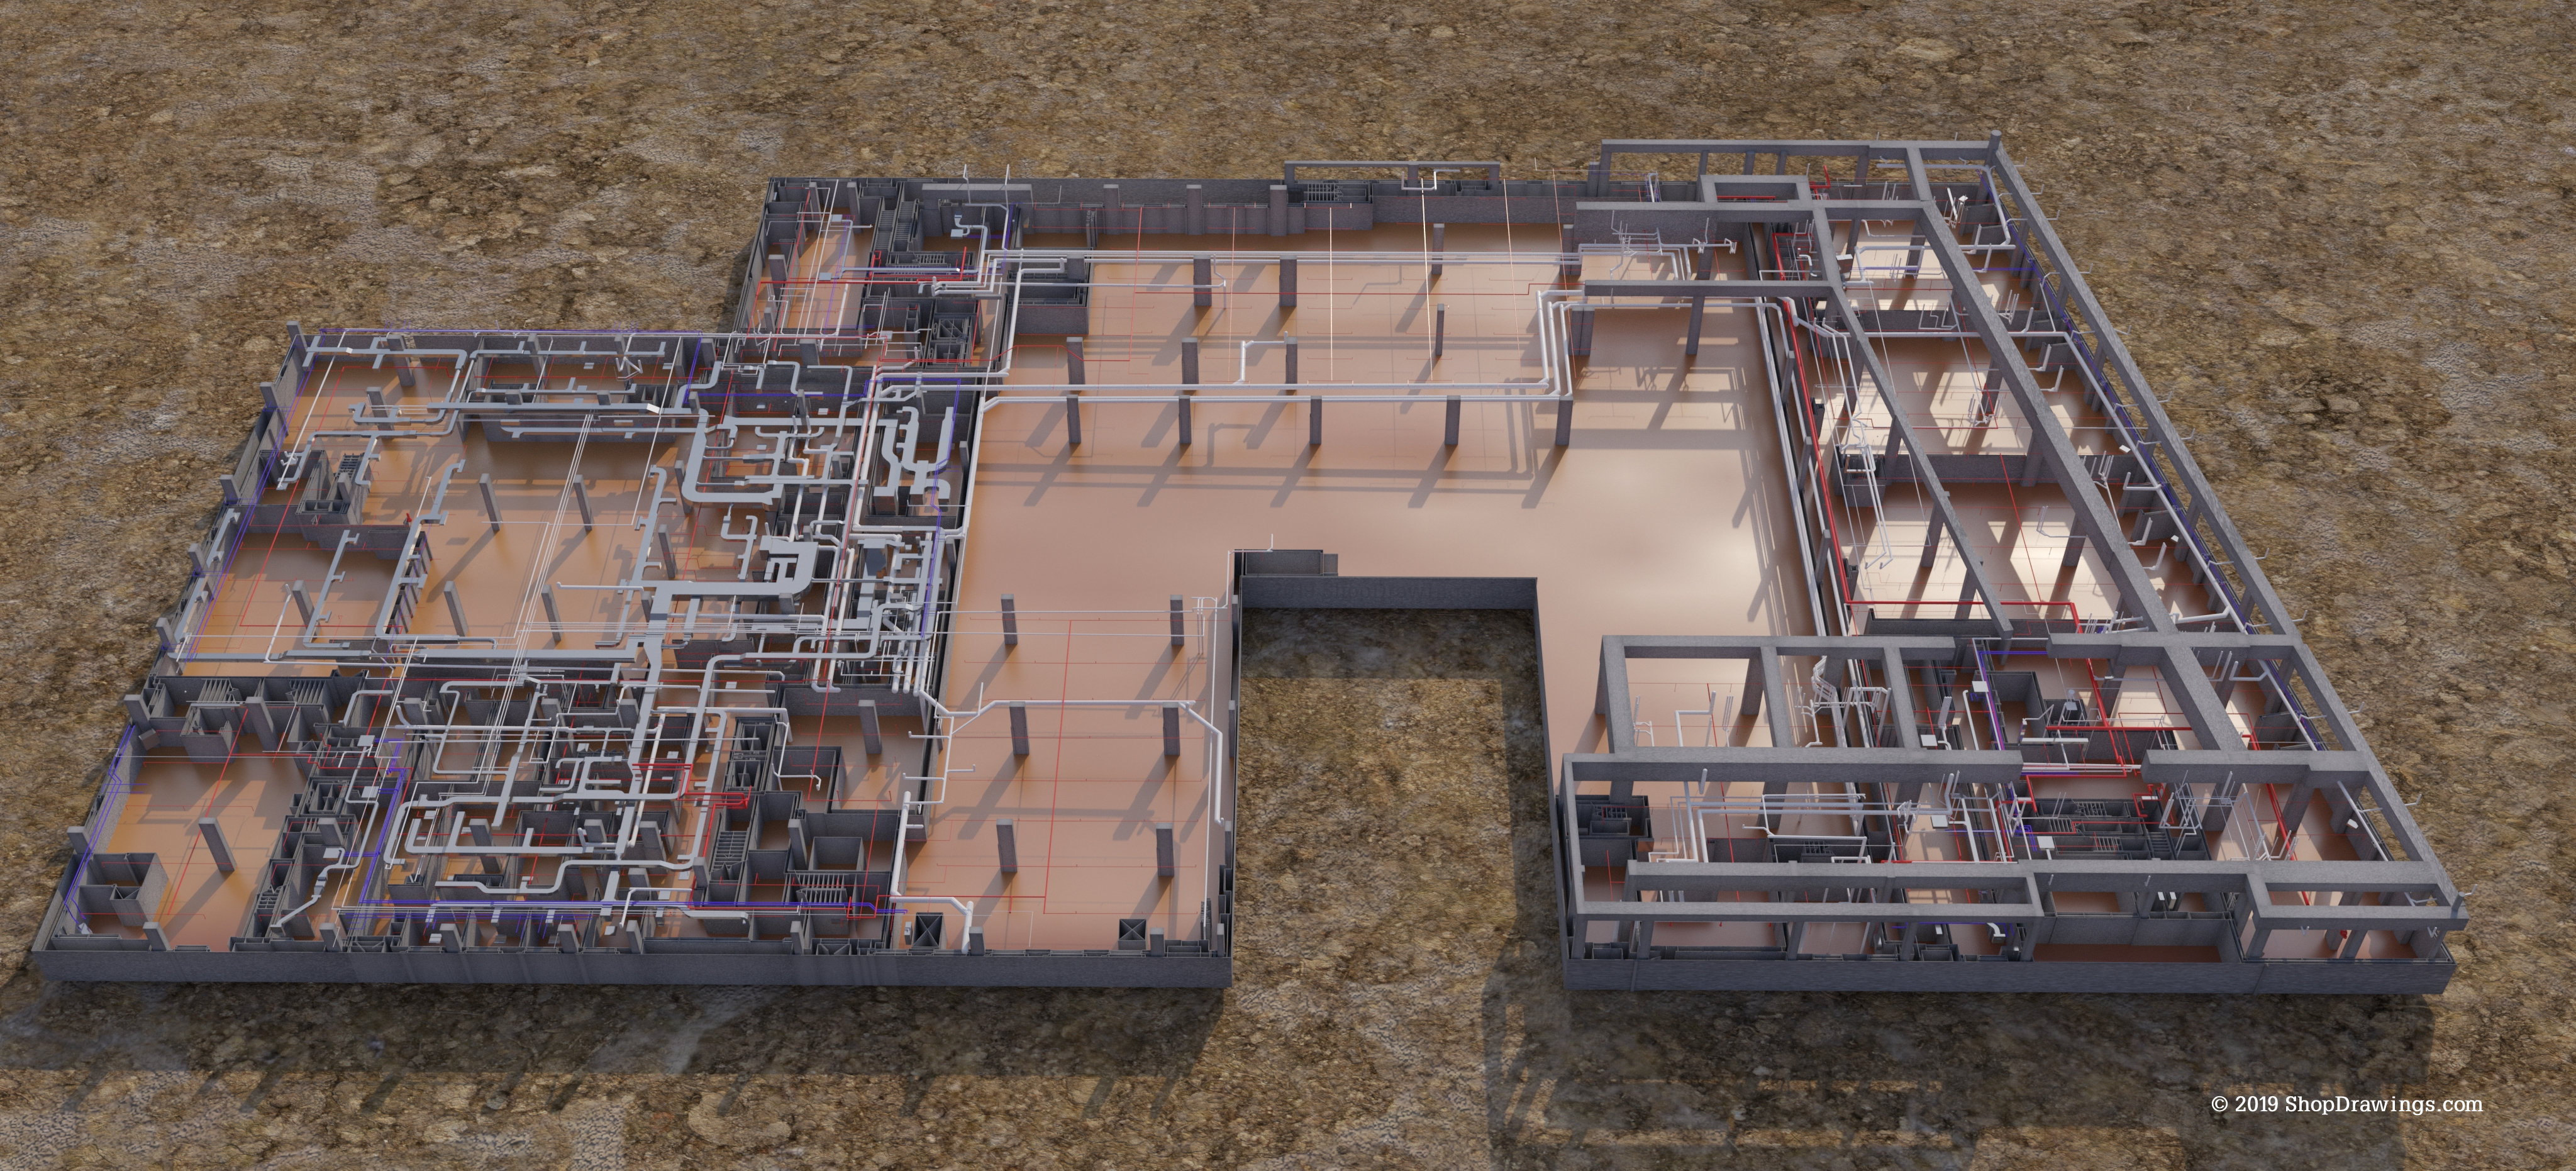 Coney 1st floor - Duct, HVAC piping, sprinklers, plumbing, structure